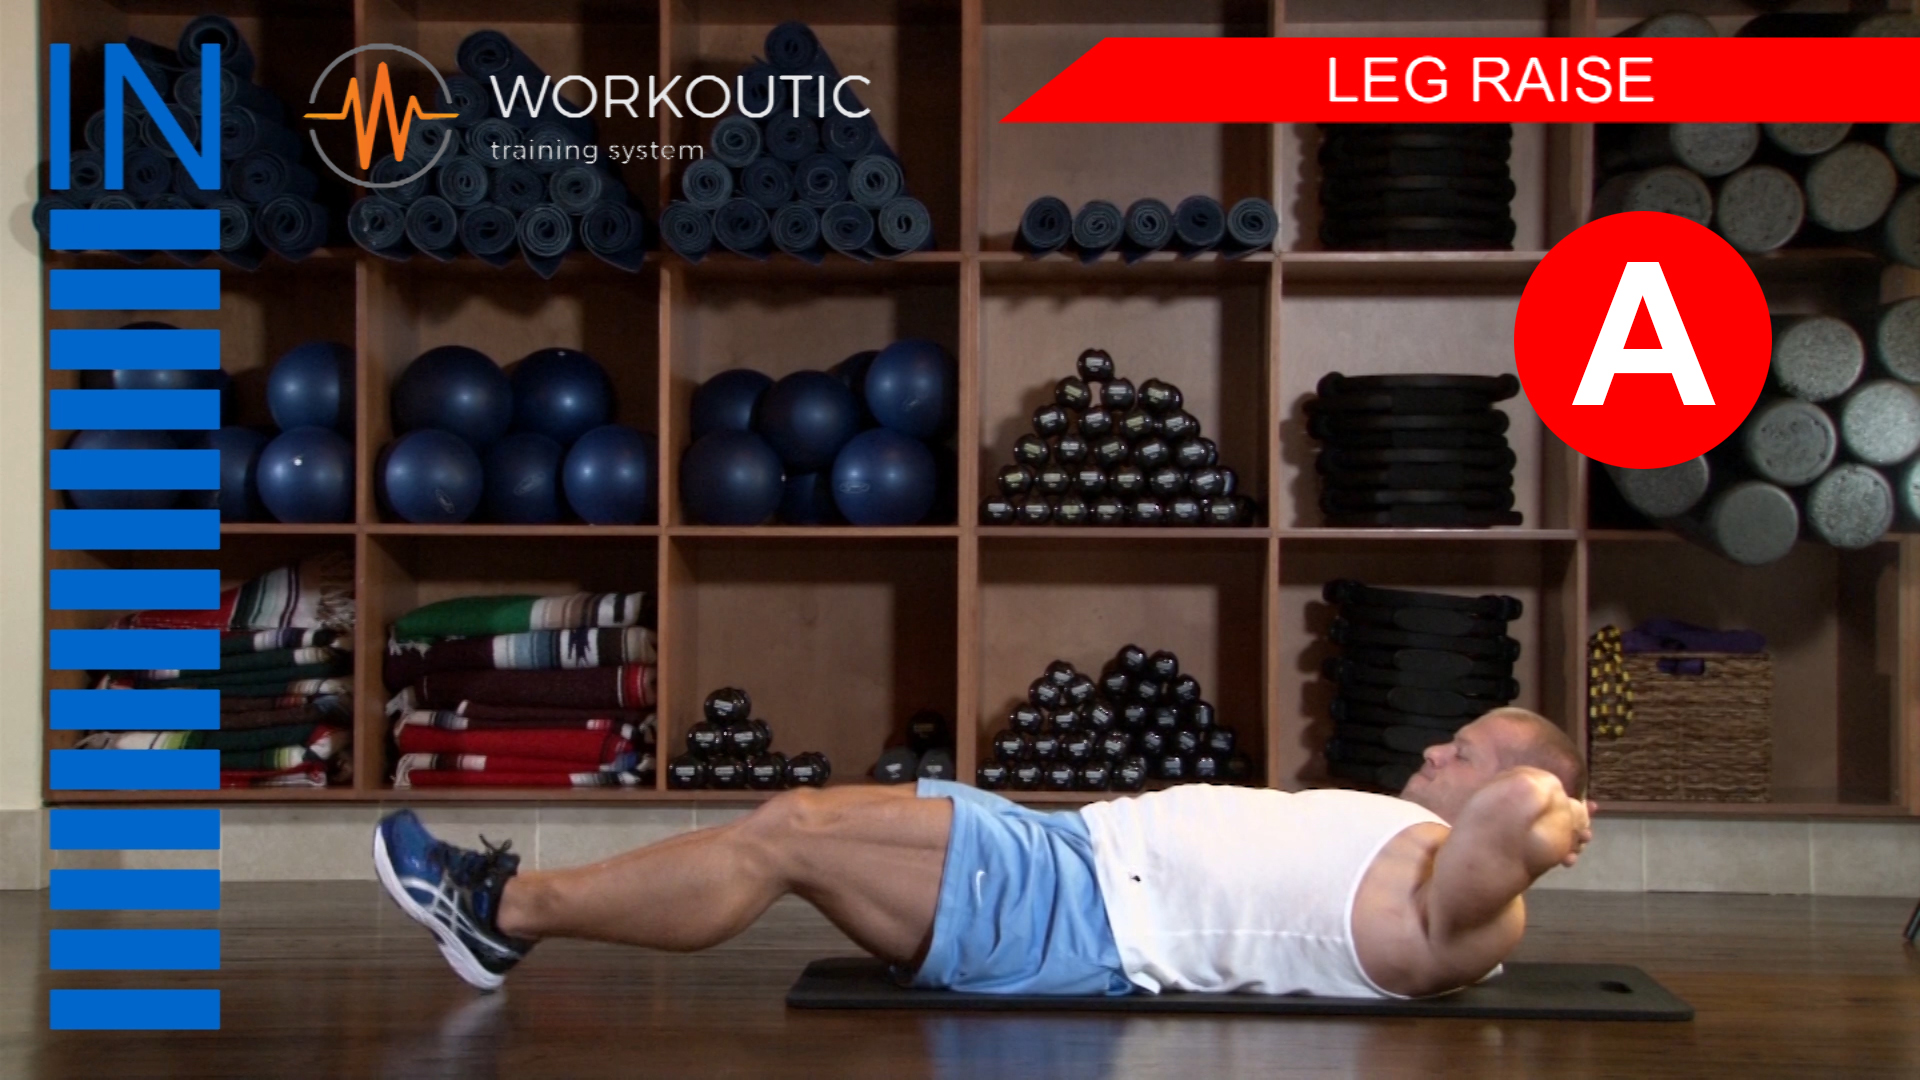 Abs Exercises - Workutic - 6 pack special - Leg Raise Inhale